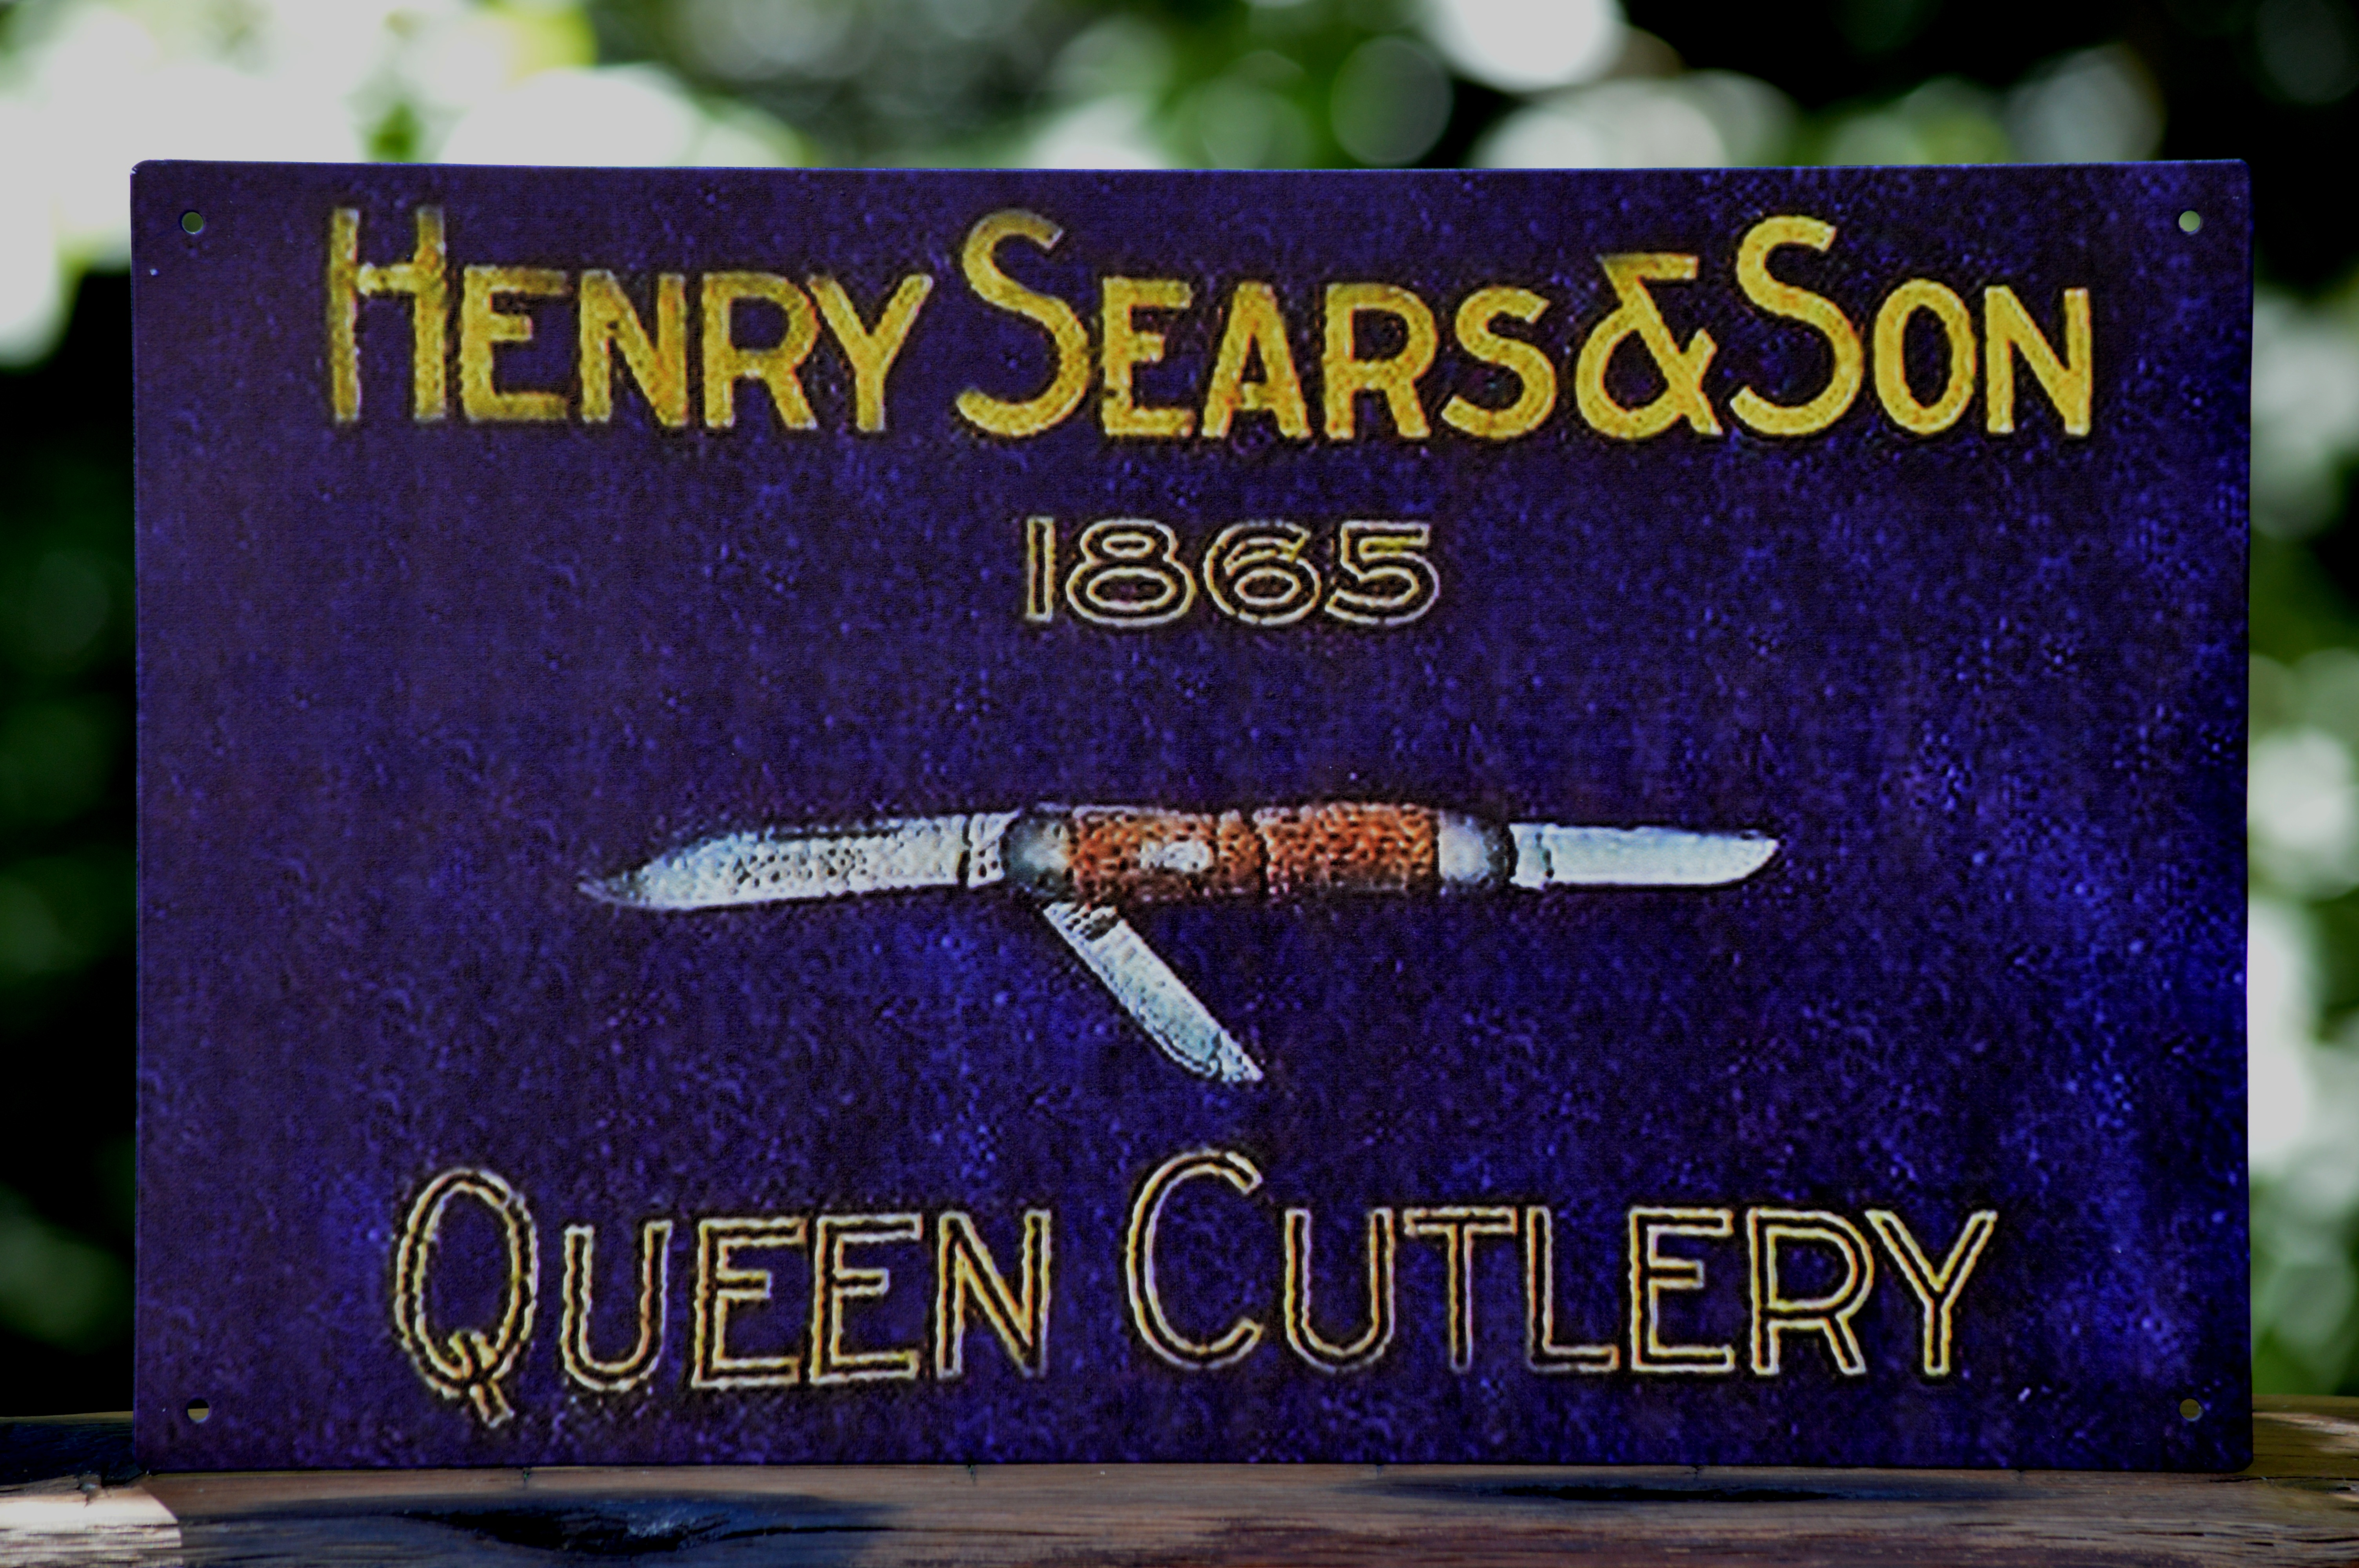 Henry Sears & Son Vintage Advertising Tin Sign